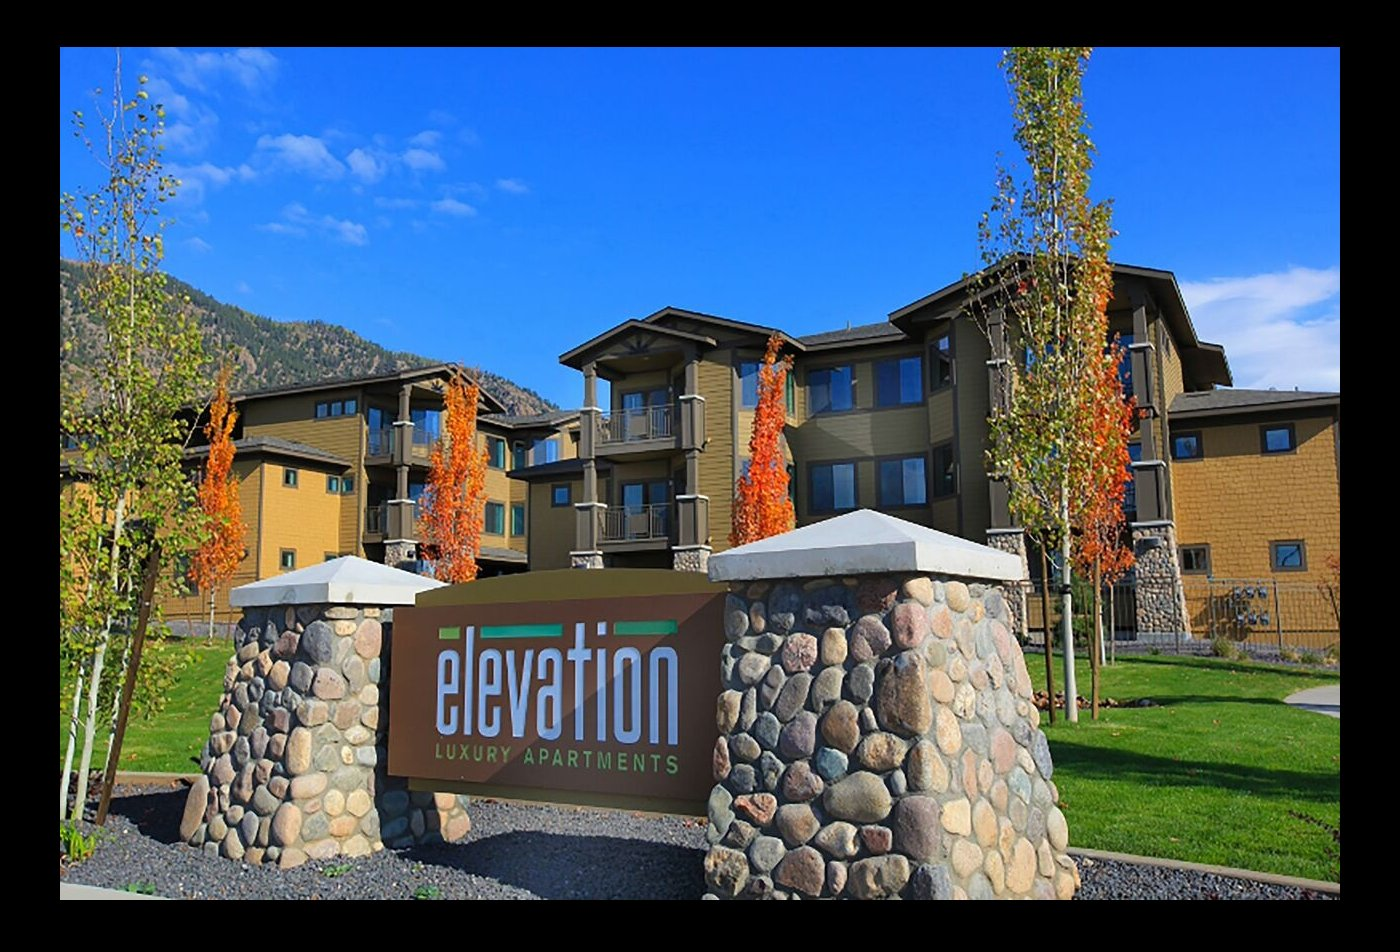 The Elevation Apartments Flagstaff, AZ signage